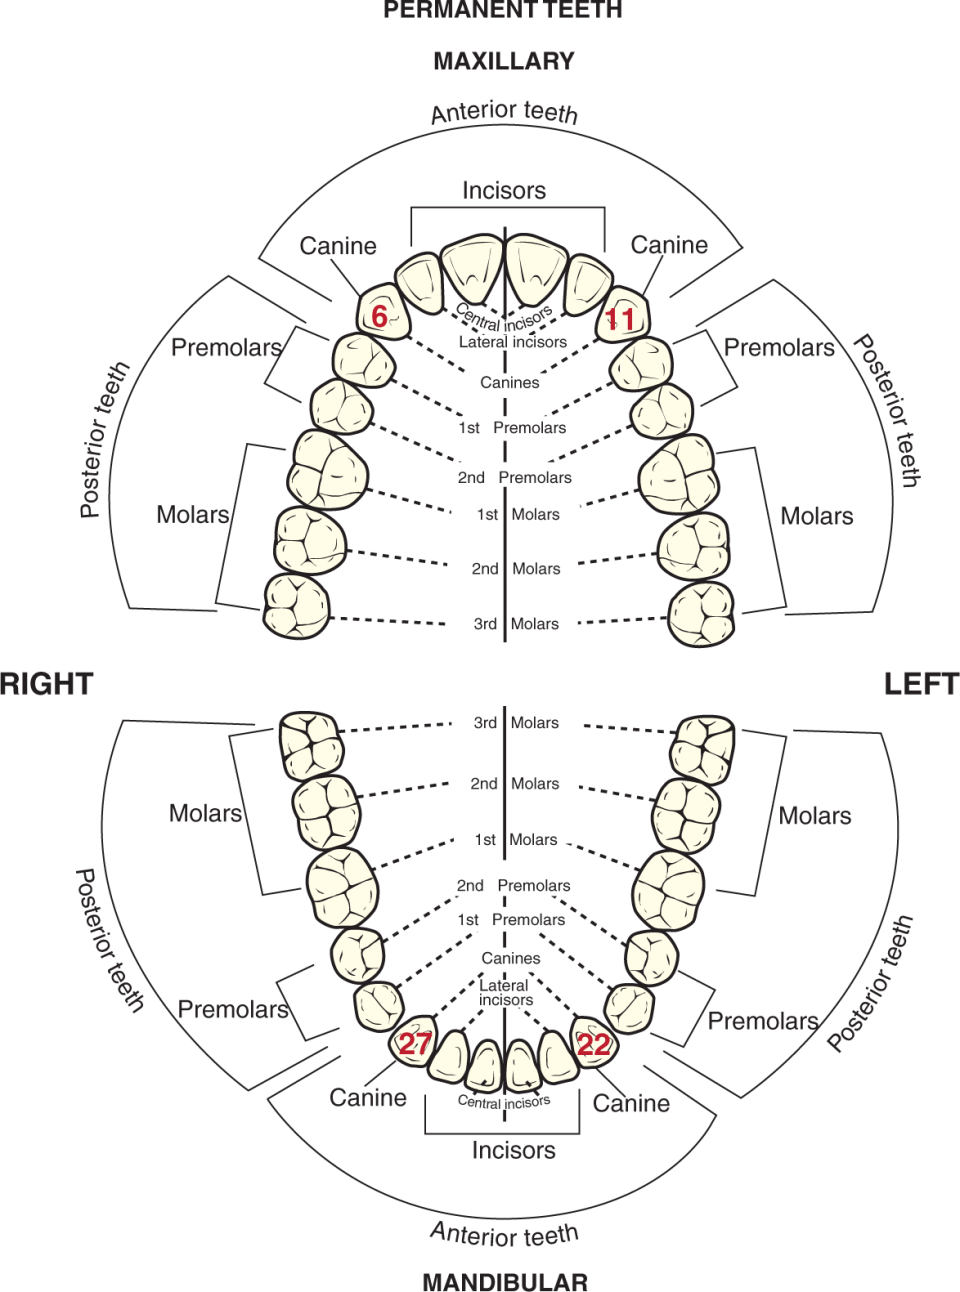 An illustration shows the adult dentition with the Universal numbers for canines highlighted in red.